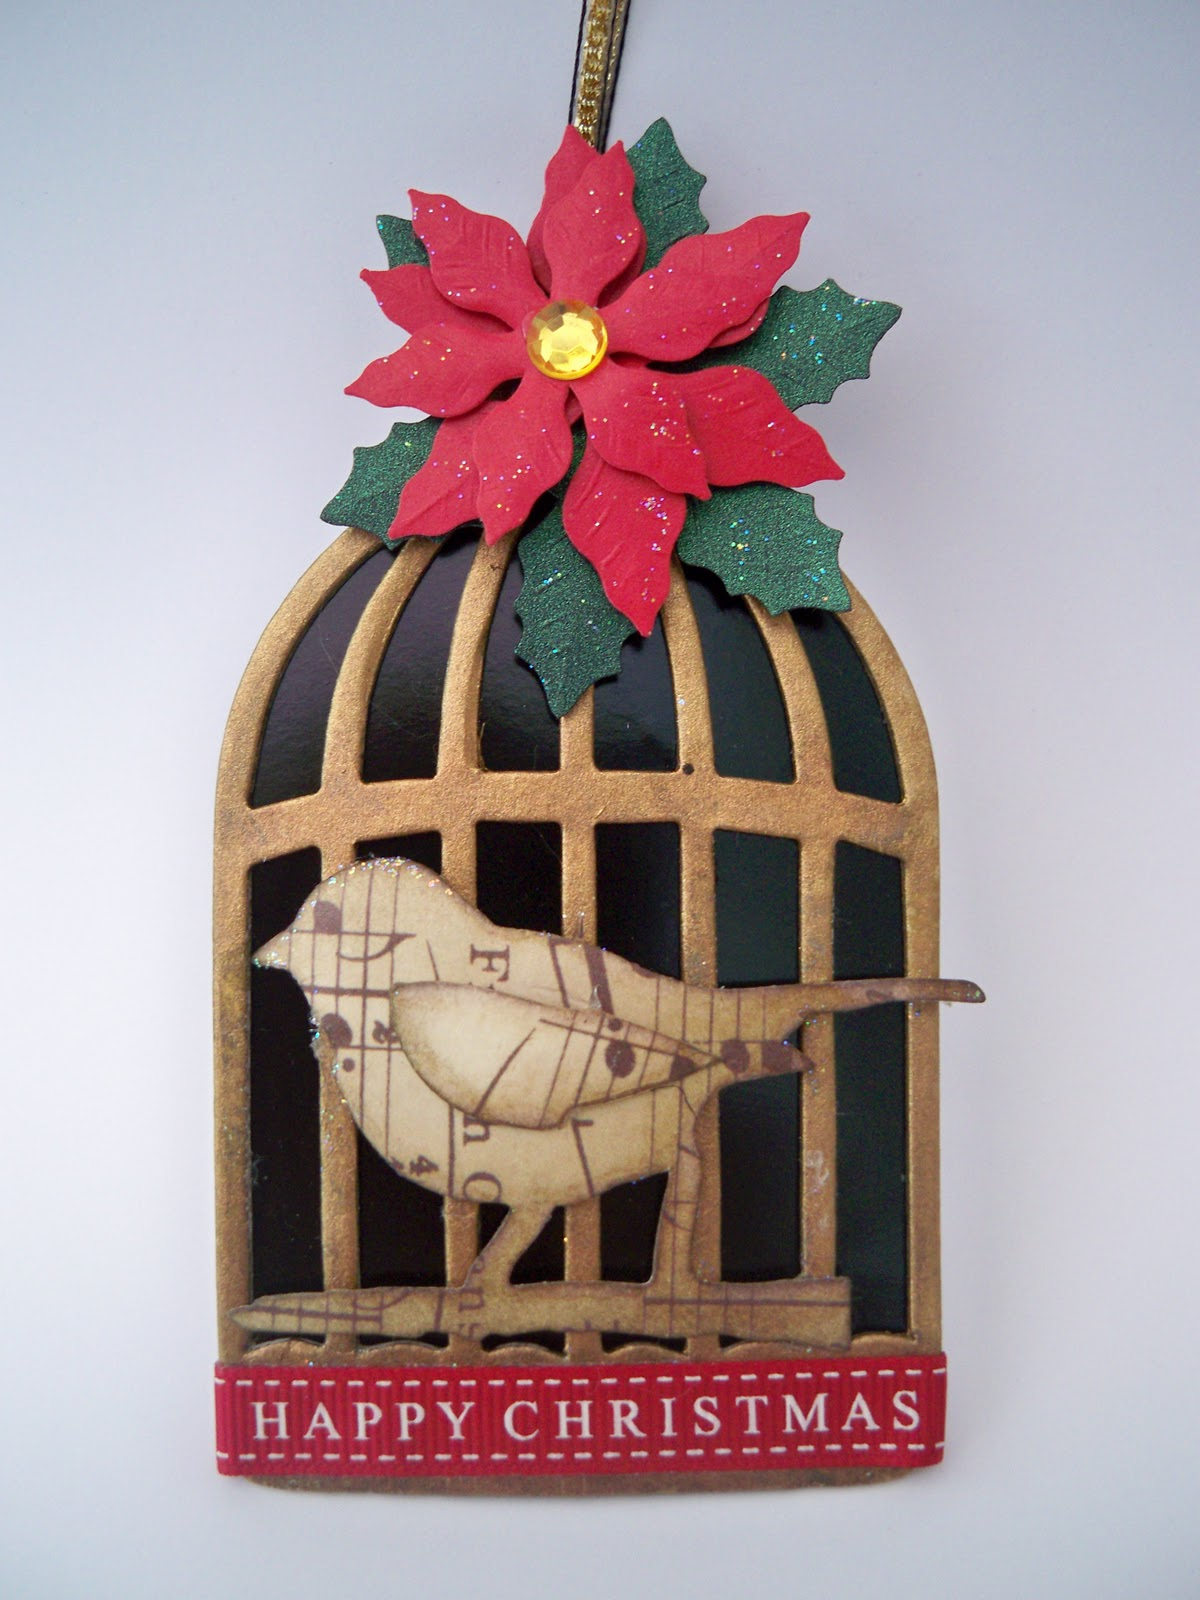 What Shall I Make Today?: Birdcage Christmas Decoration